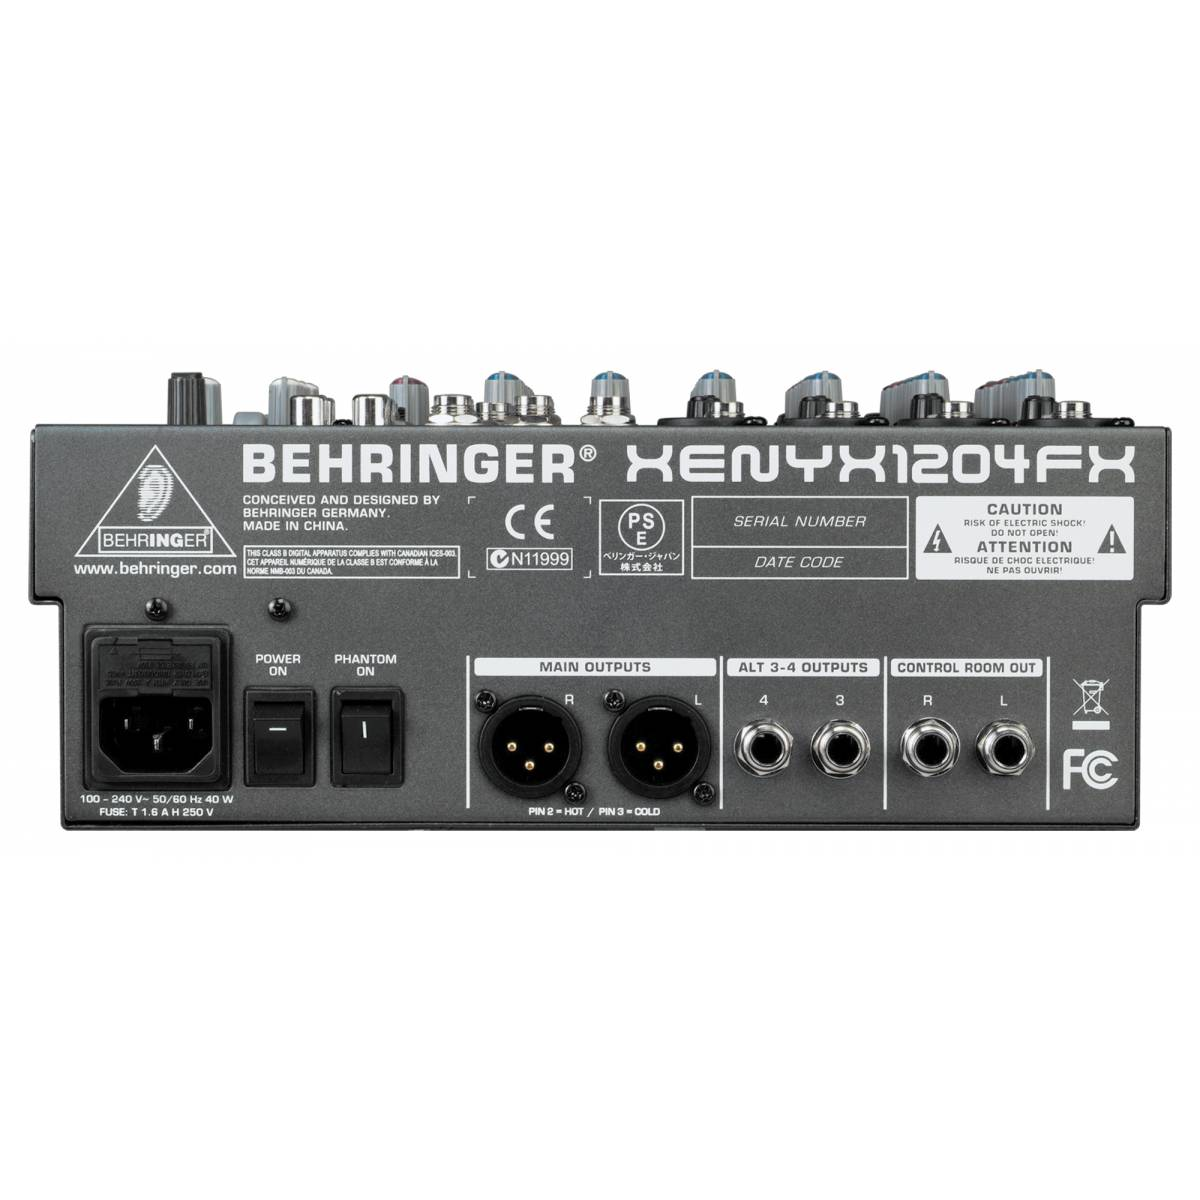 behringer xenyx 1204fx analogue mixer. Black Bedroom Furniture Sets. Home Design Ideas